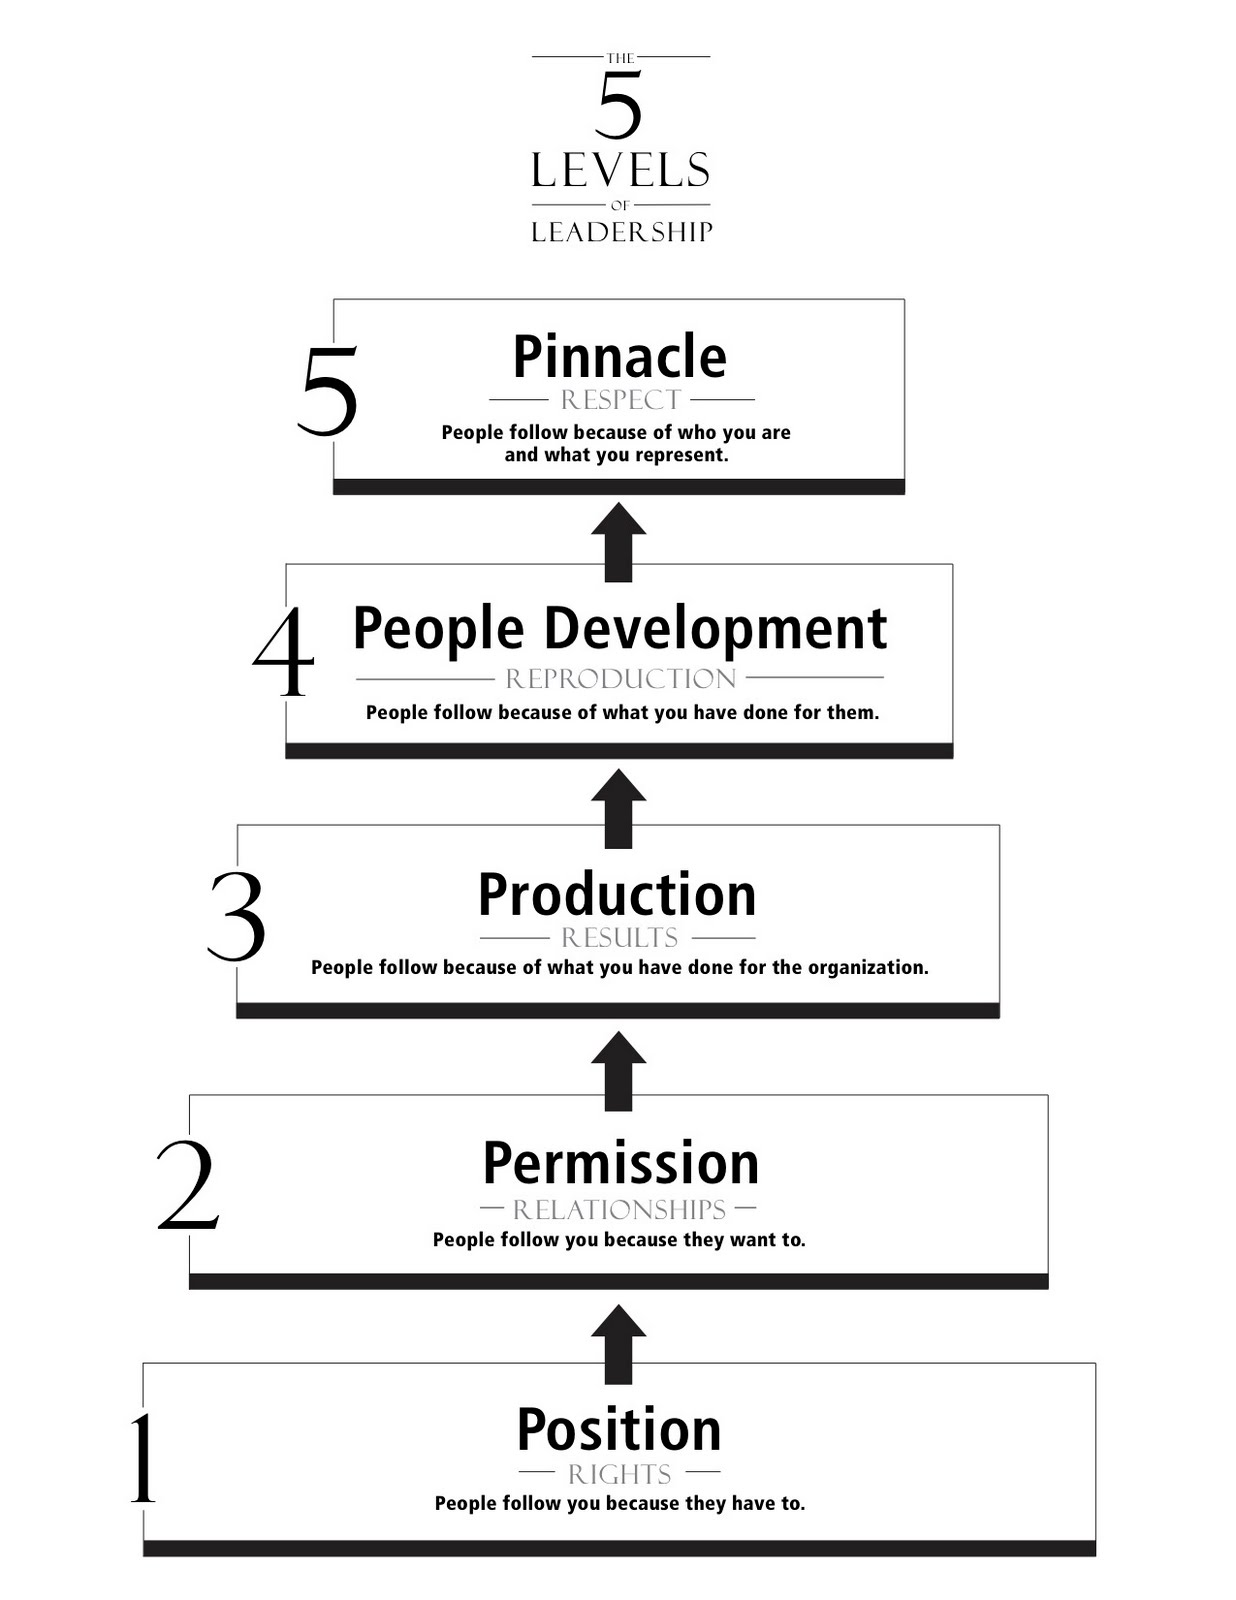 levels of leadership Leadership development is design to take you through various levels of growth and development in your organization, business and life as a leader.